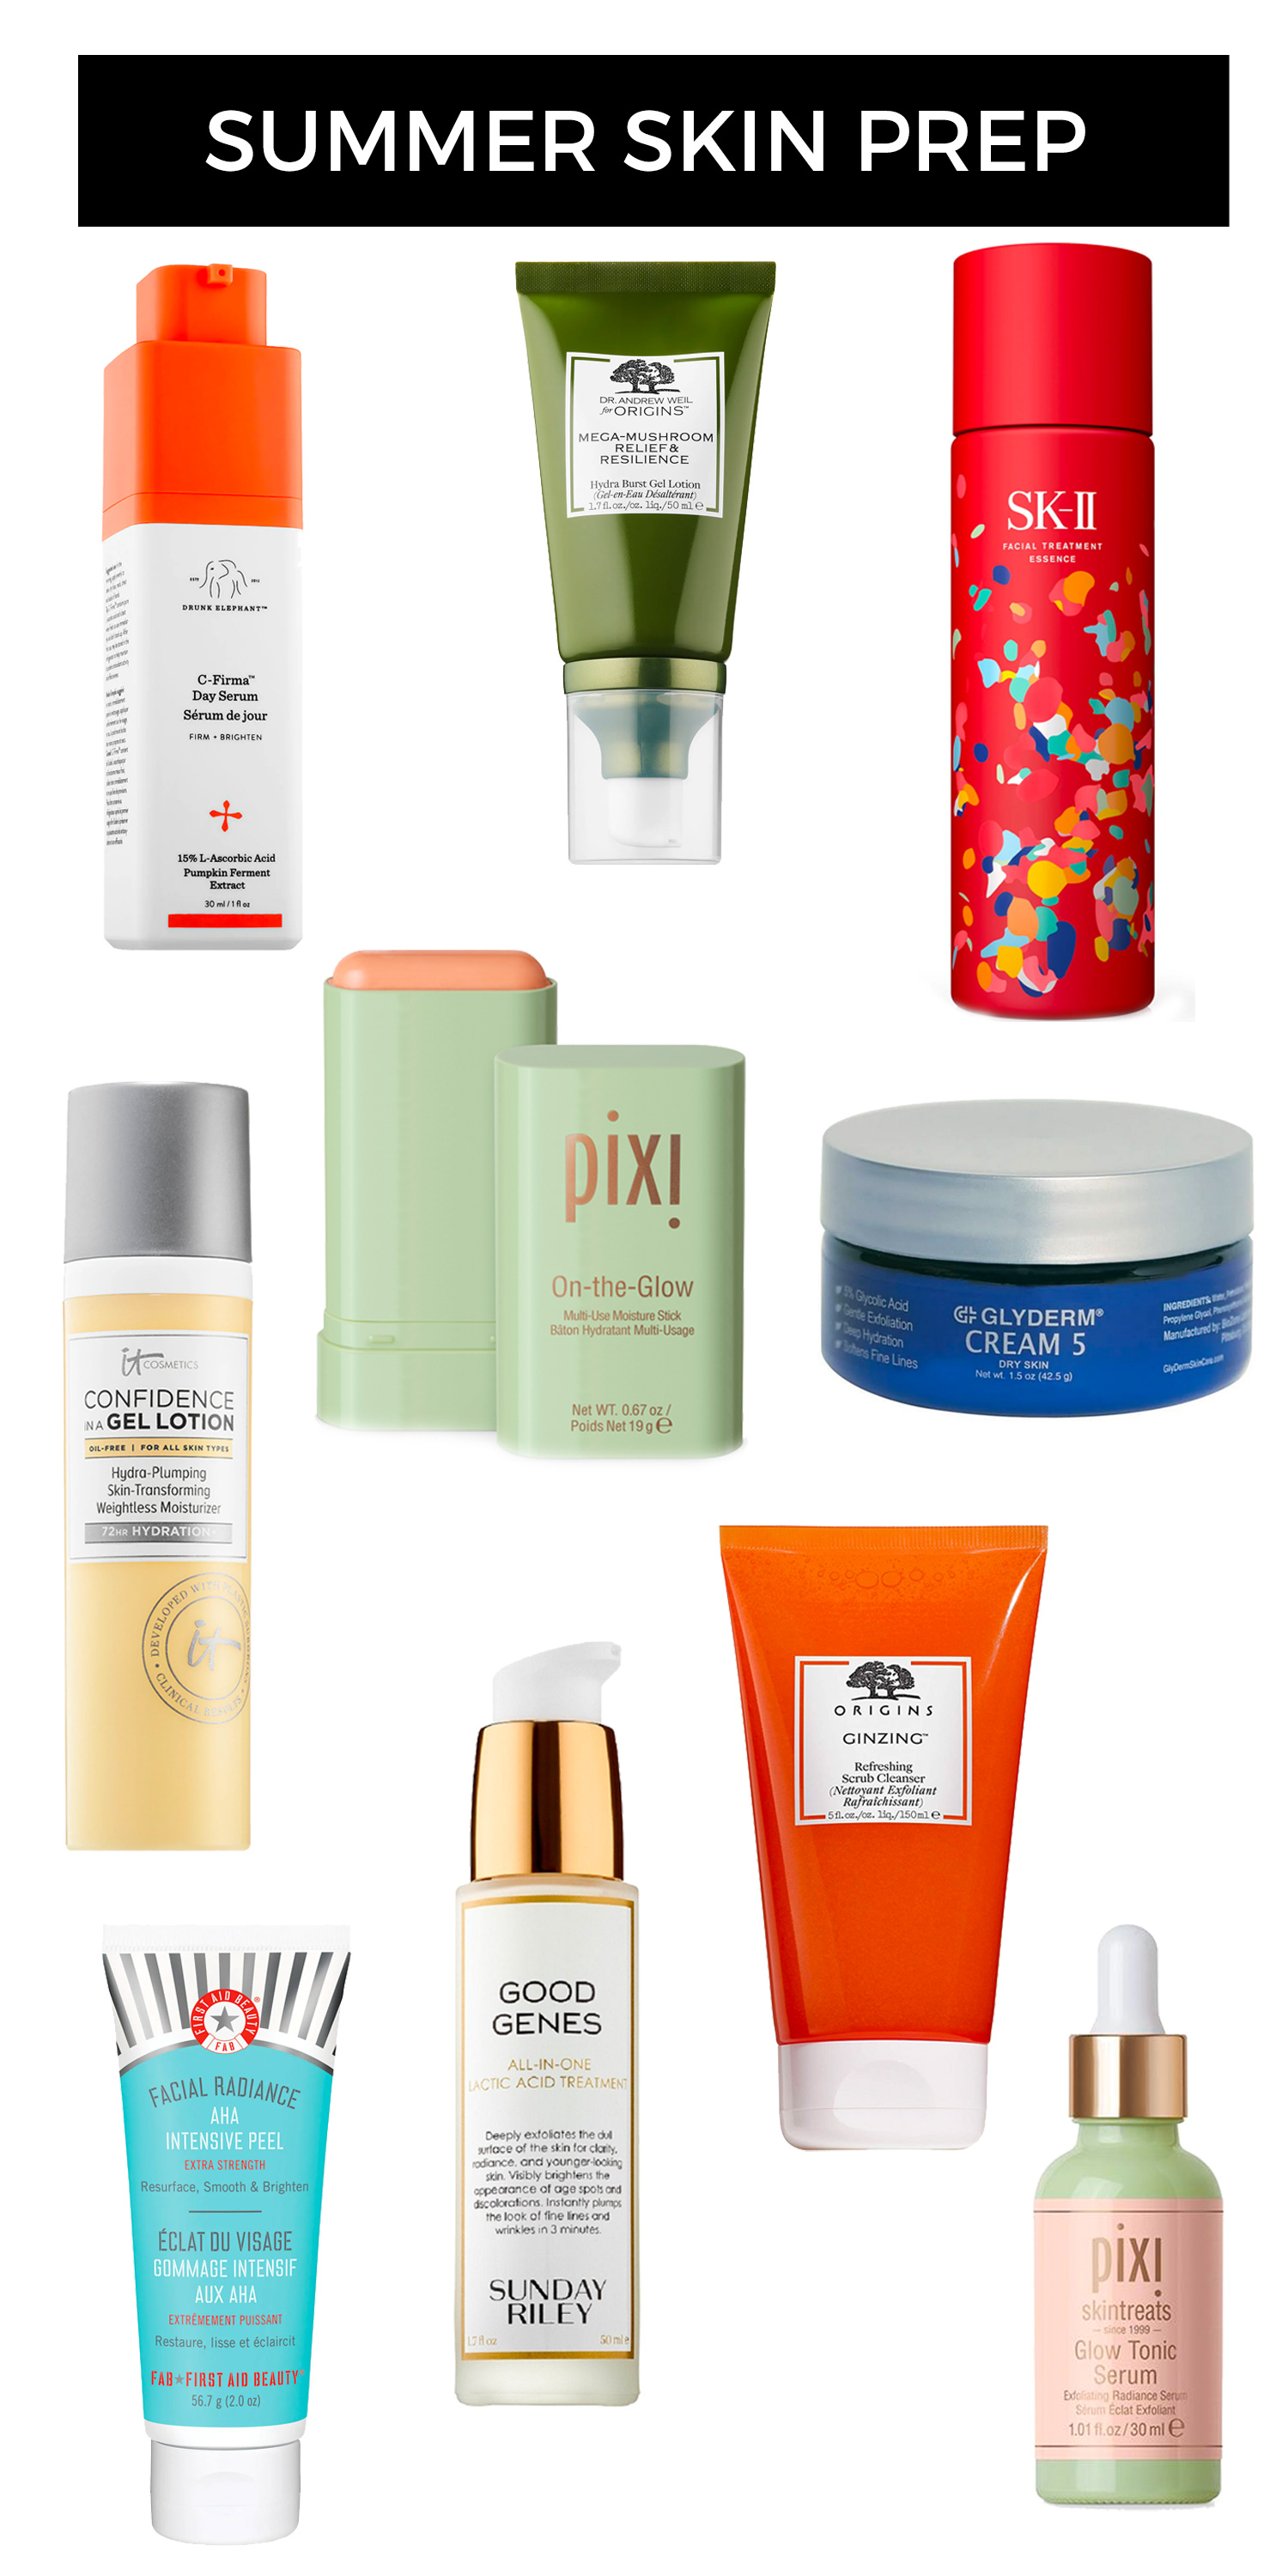 Summer Skin Prep: 10 Skin Care Products You Need Now